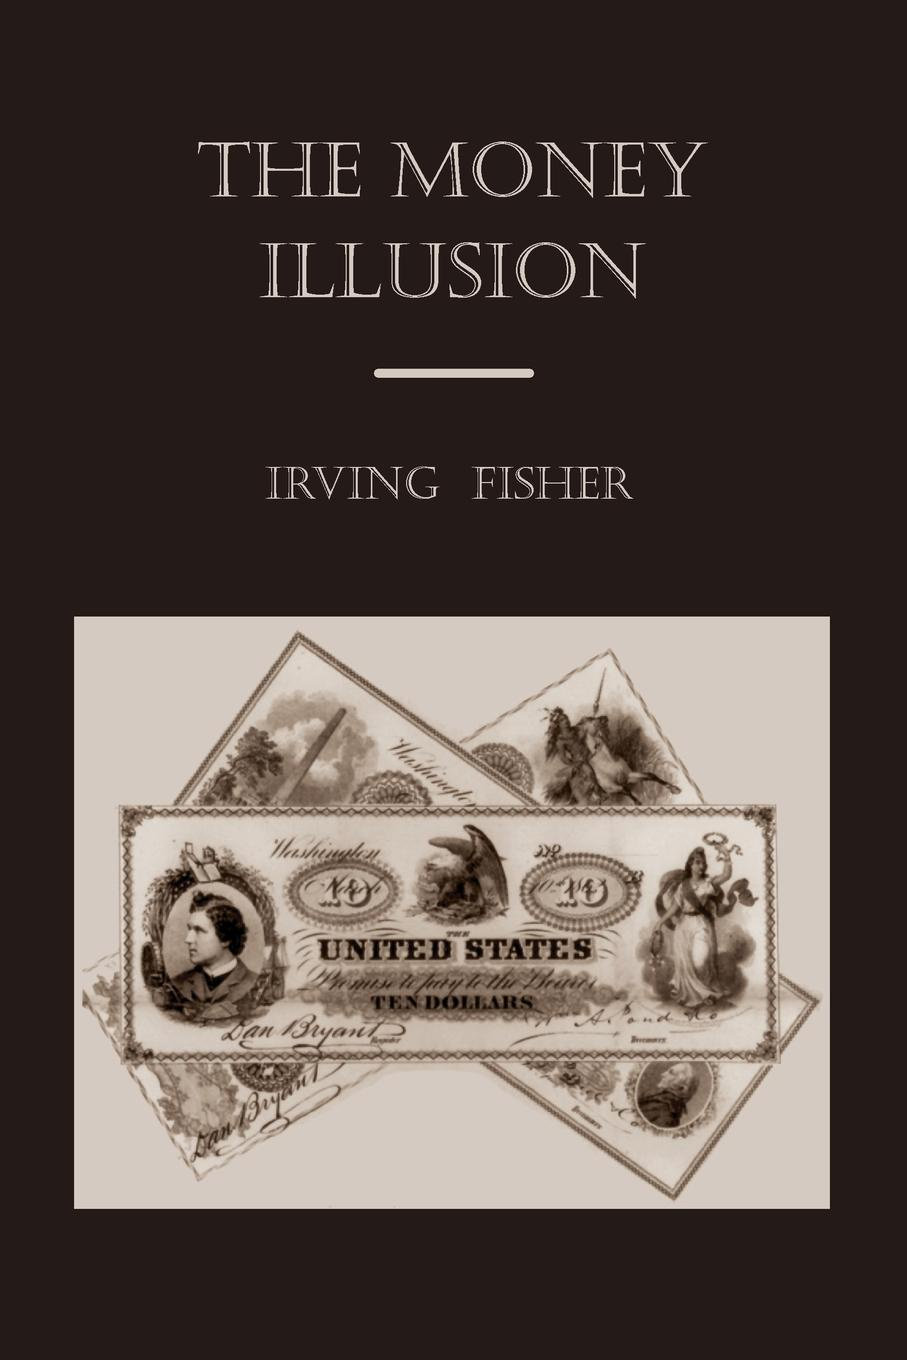 Irving Fisher The Money Illusion lina laubisch debate about alternative monetary systems silvio gesell john maynard keynes irving fisher